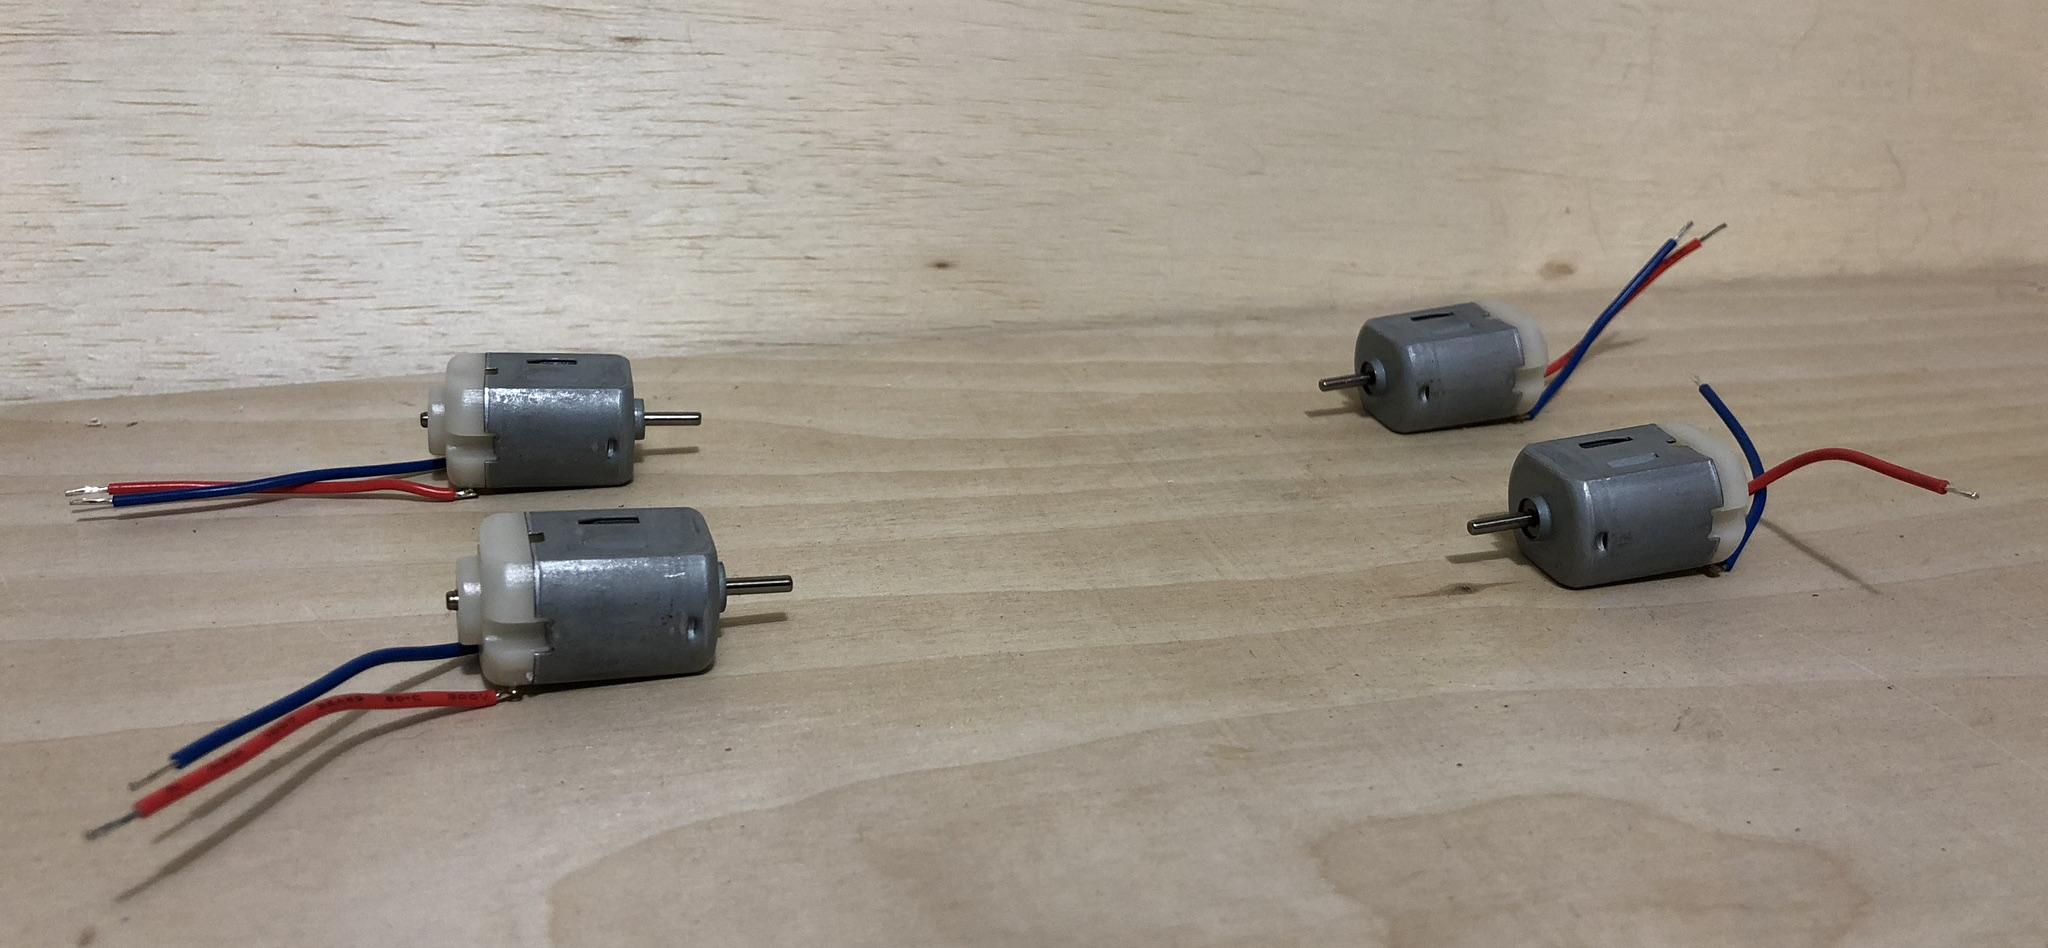 A set of four DC hobby Motors from Adafruit